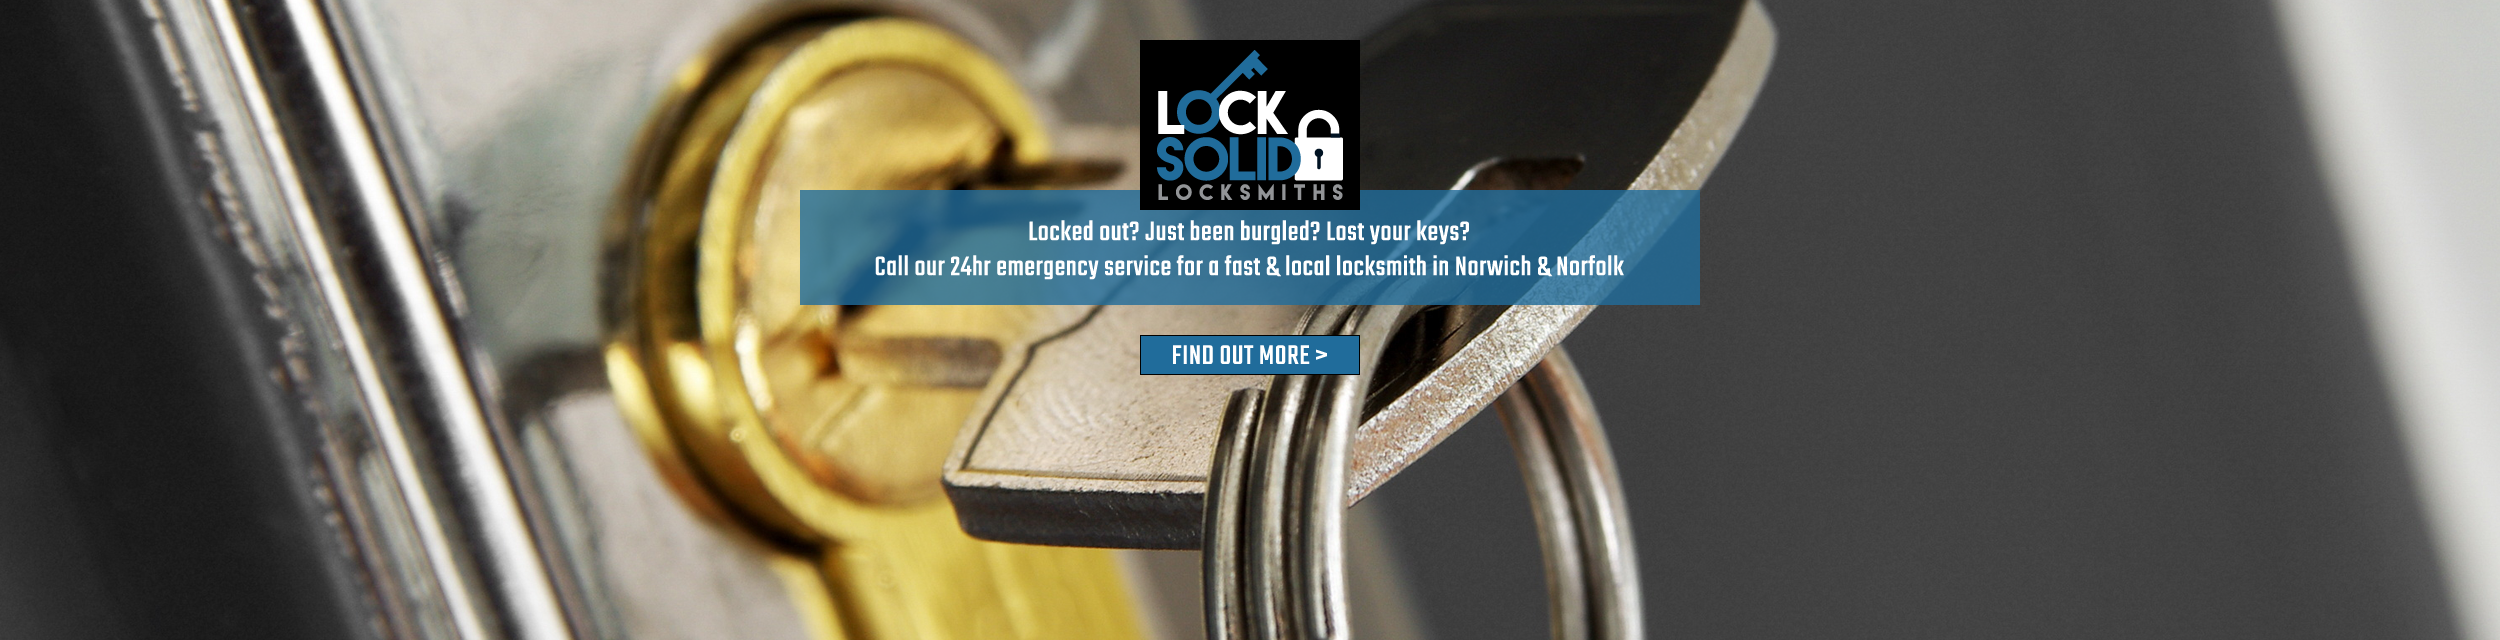 LockSolid Locksmiths Norwich | 24 Hour Emergency Locksmiths - Locked out? Just been burgled? Lost your keys? Call our 24 hour emergency service for a fast & local locksmith in Norwich & Norfolk. Click to find out more!